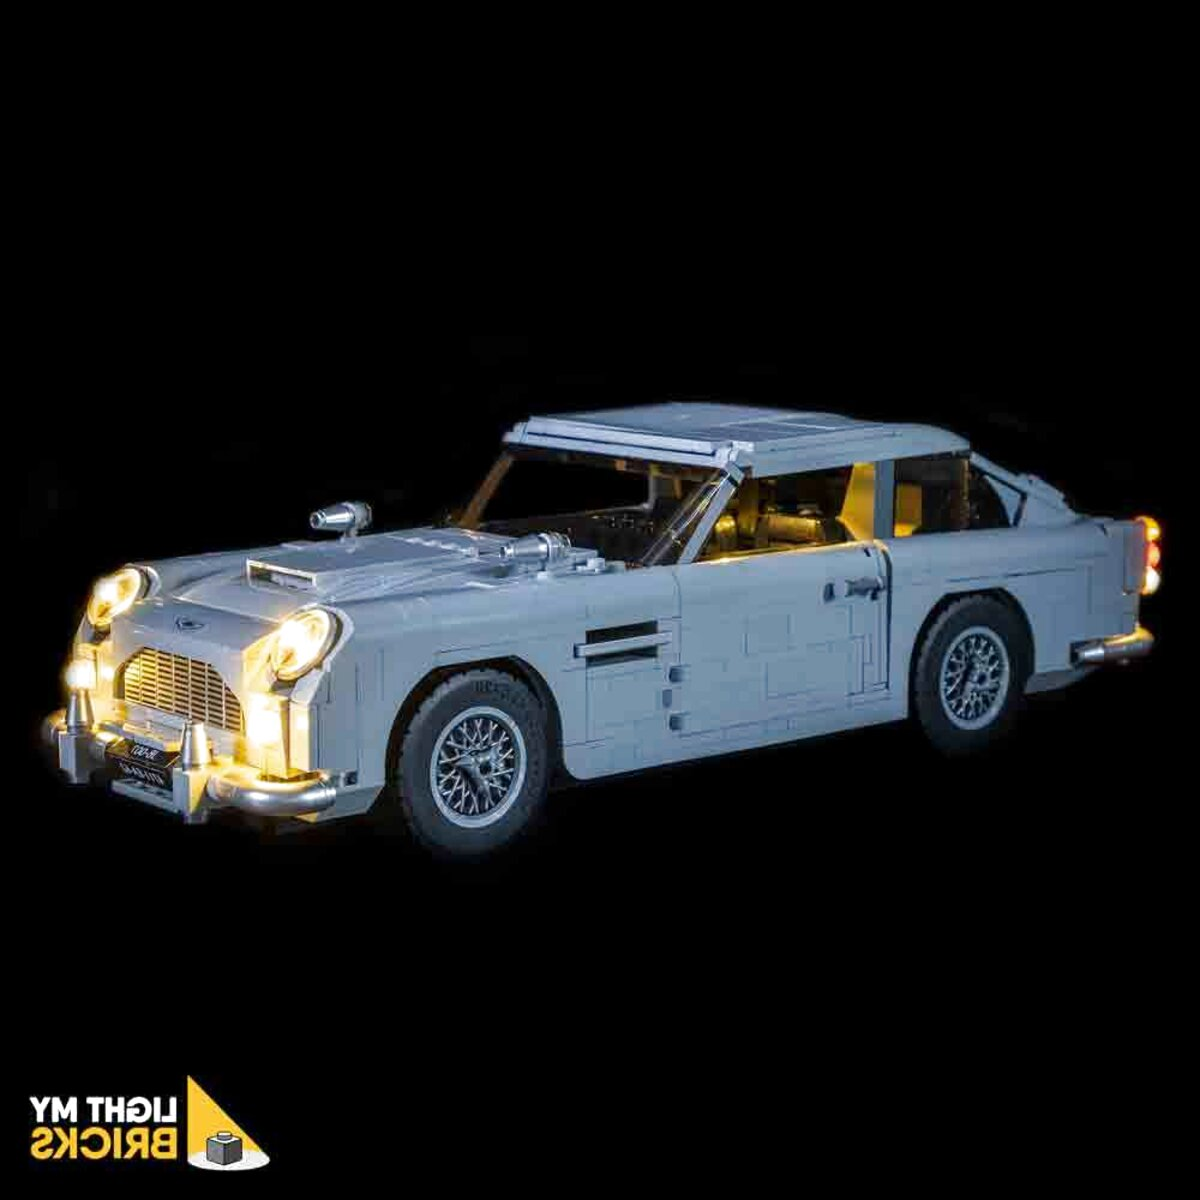 James Bond Aston Martin Db5 Kit For Sale In UK